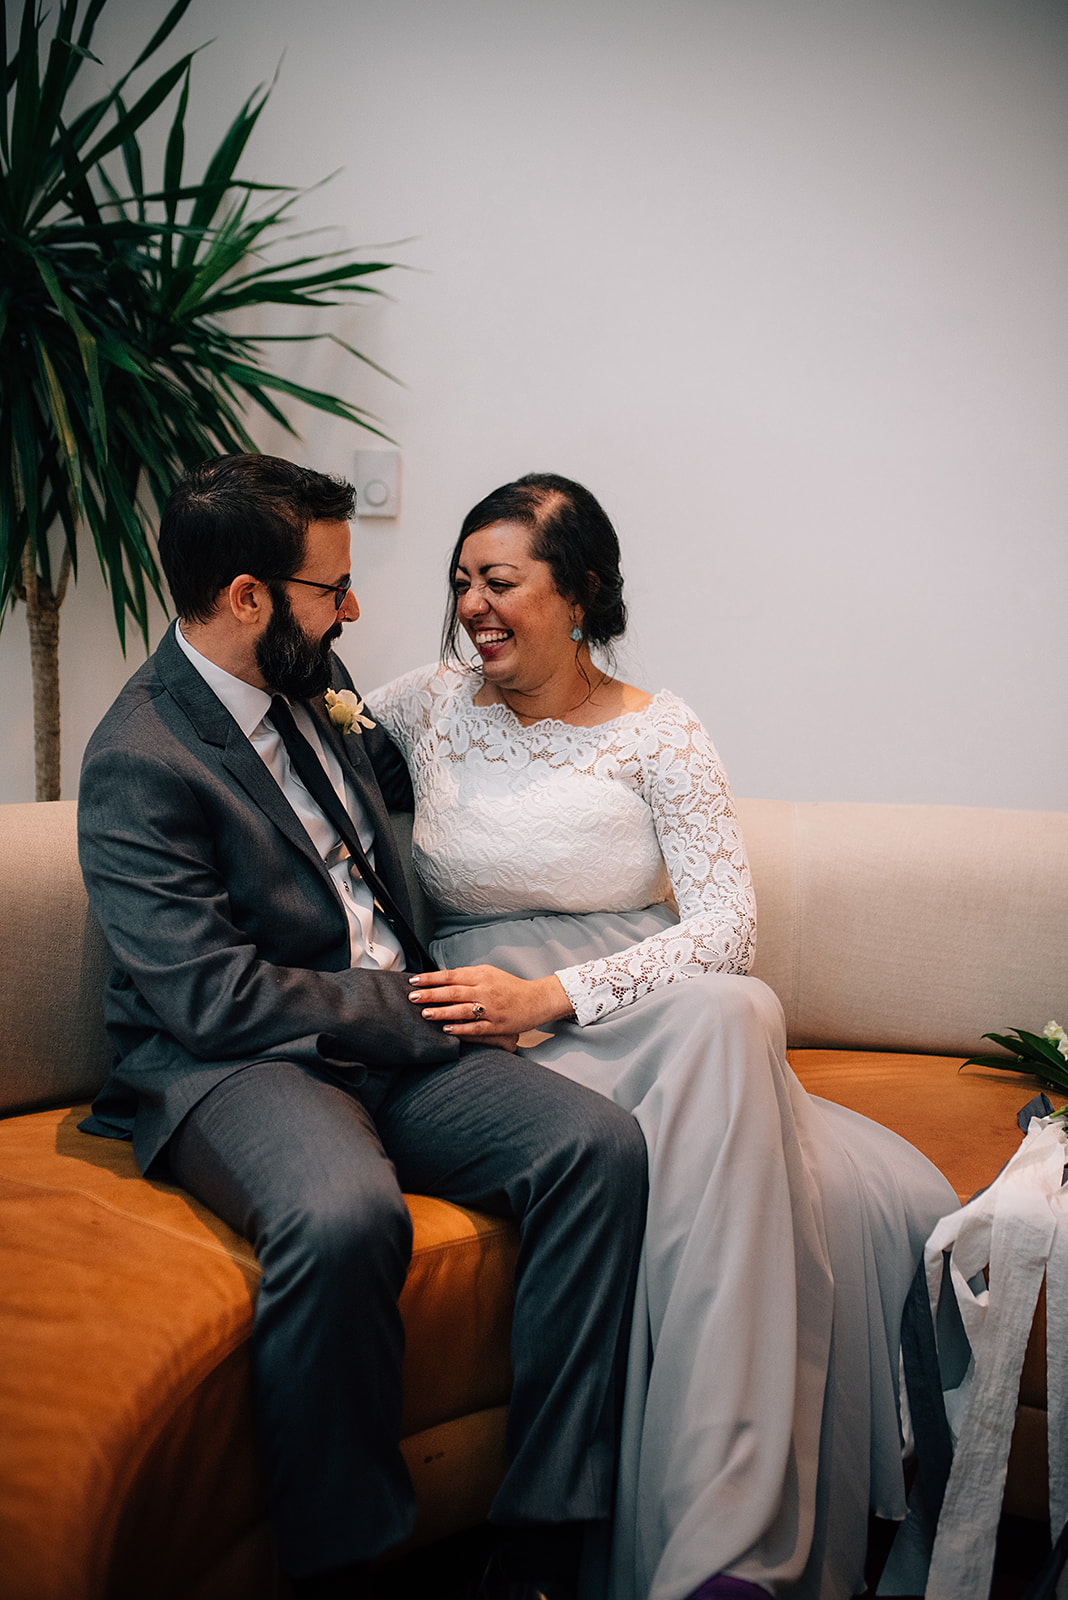 Durham Elopement - Durham Elopement Photographer - Courthouse Wedding - Durham Courthouse Photographer - North Carolina Photographer - North Carolina Elopement Photographer